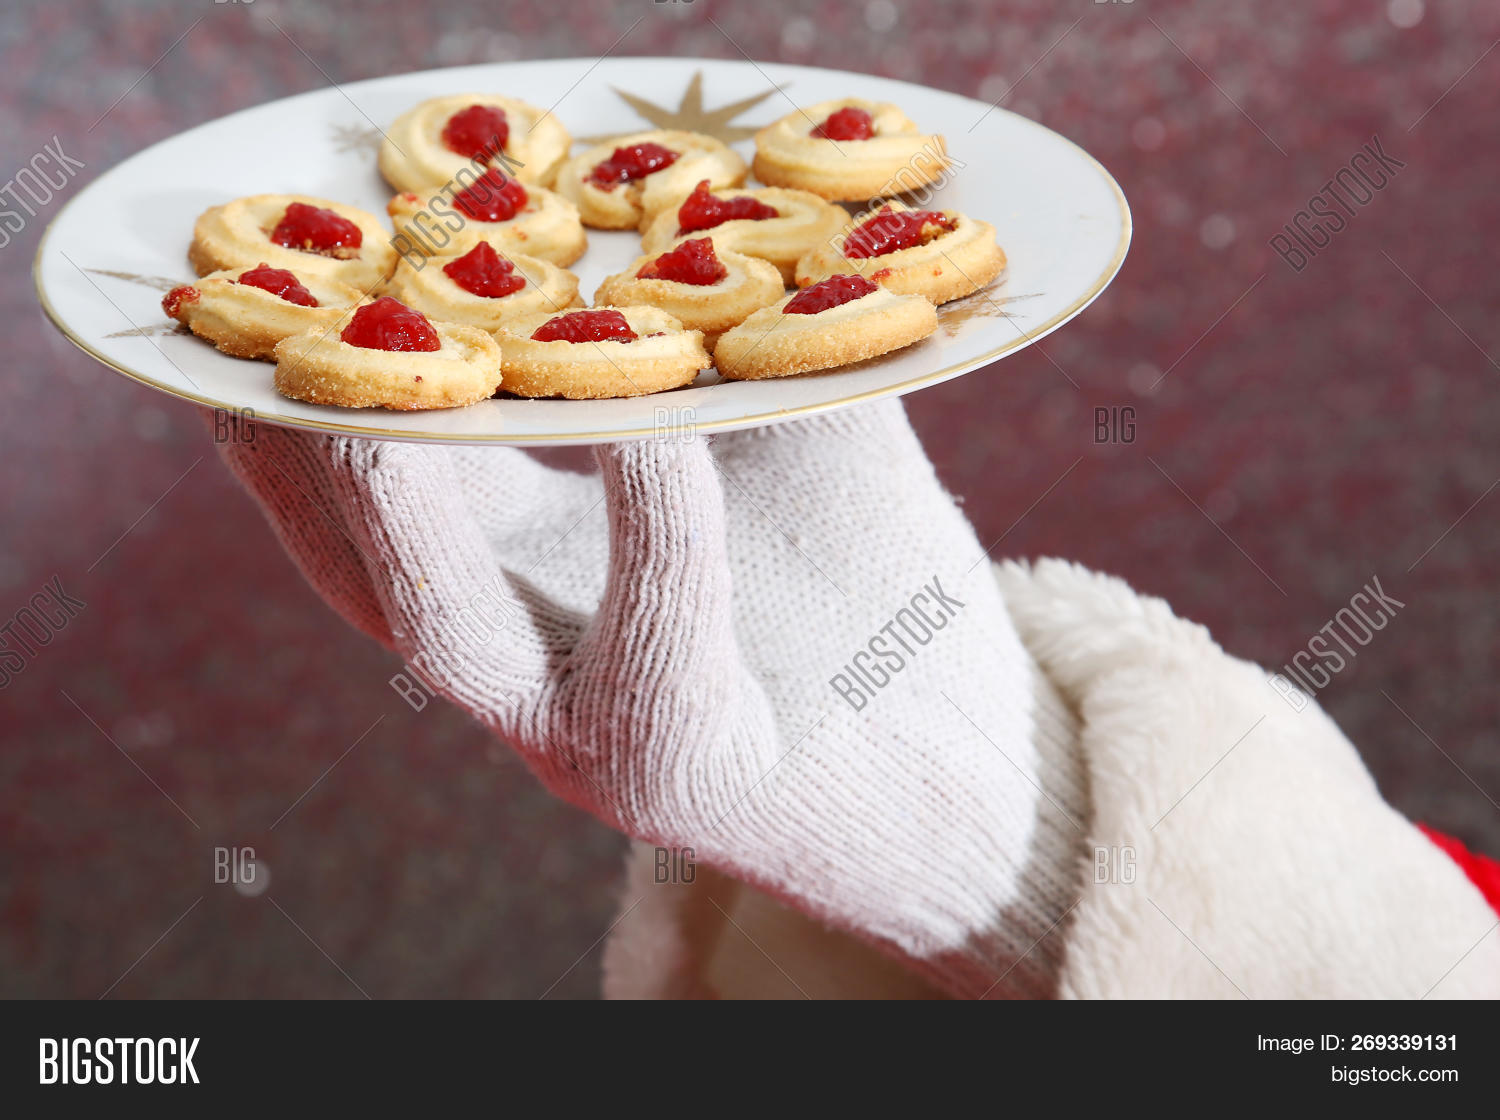 Cookies Christmas Image Photo Free Trial Bigstock